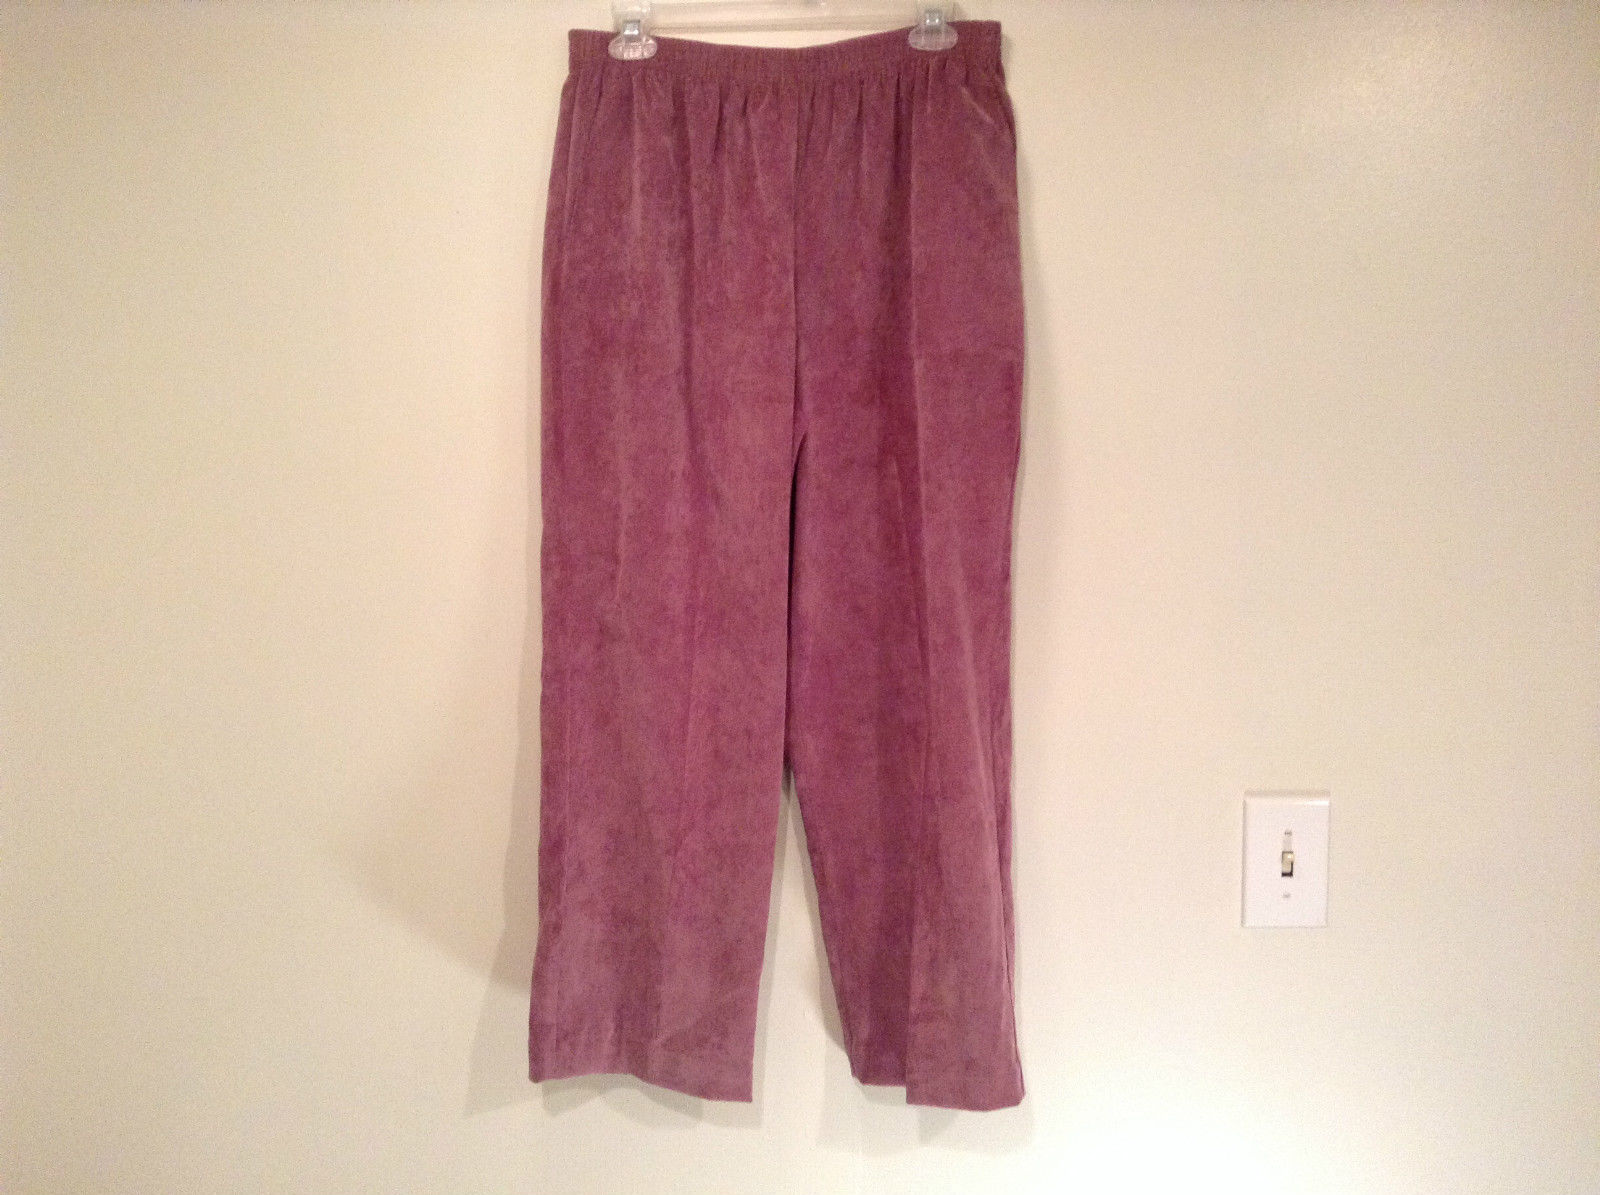 Violet Corduroy Alfred Dunner Stretchy Waist Casual Pants Size 14 Side Pockets